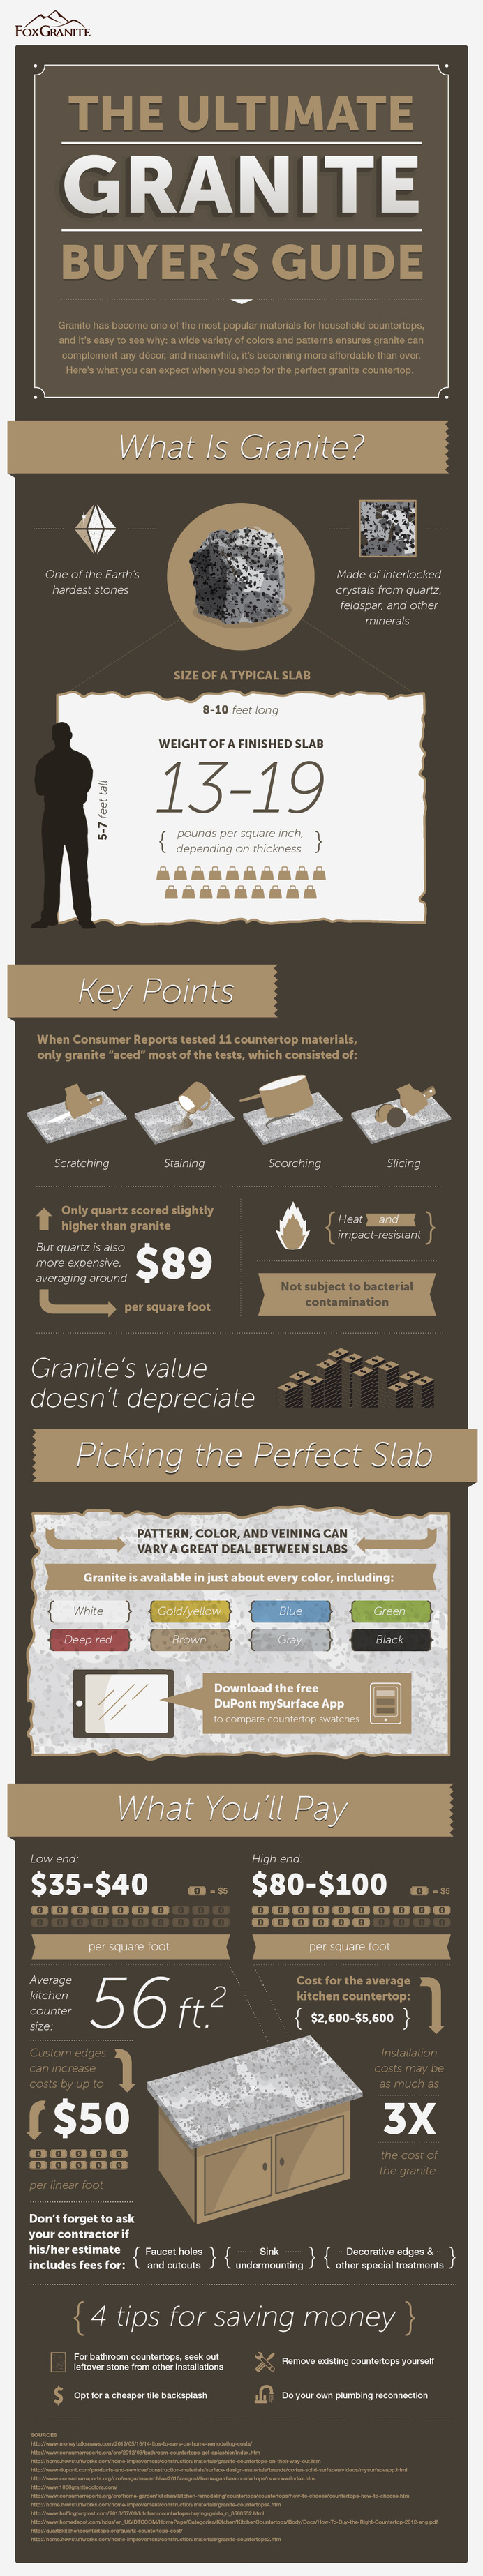 Infographic for The Granite Buyers Guide by Fox Granite Countertops #countertops #infographic #granite